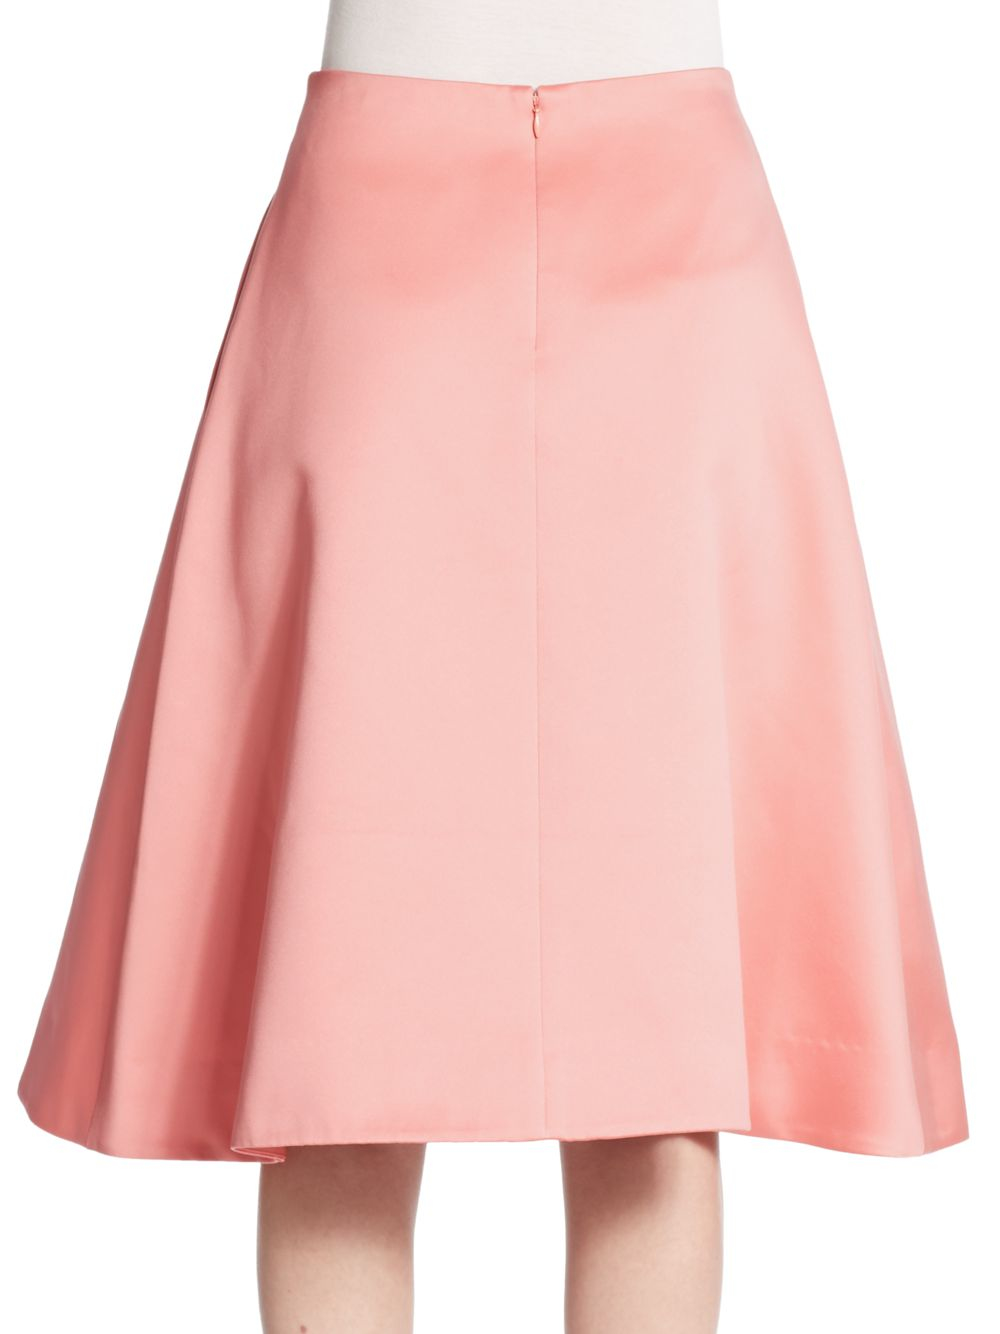 Tibi Satin A-line Skirt in Pink | Lyst